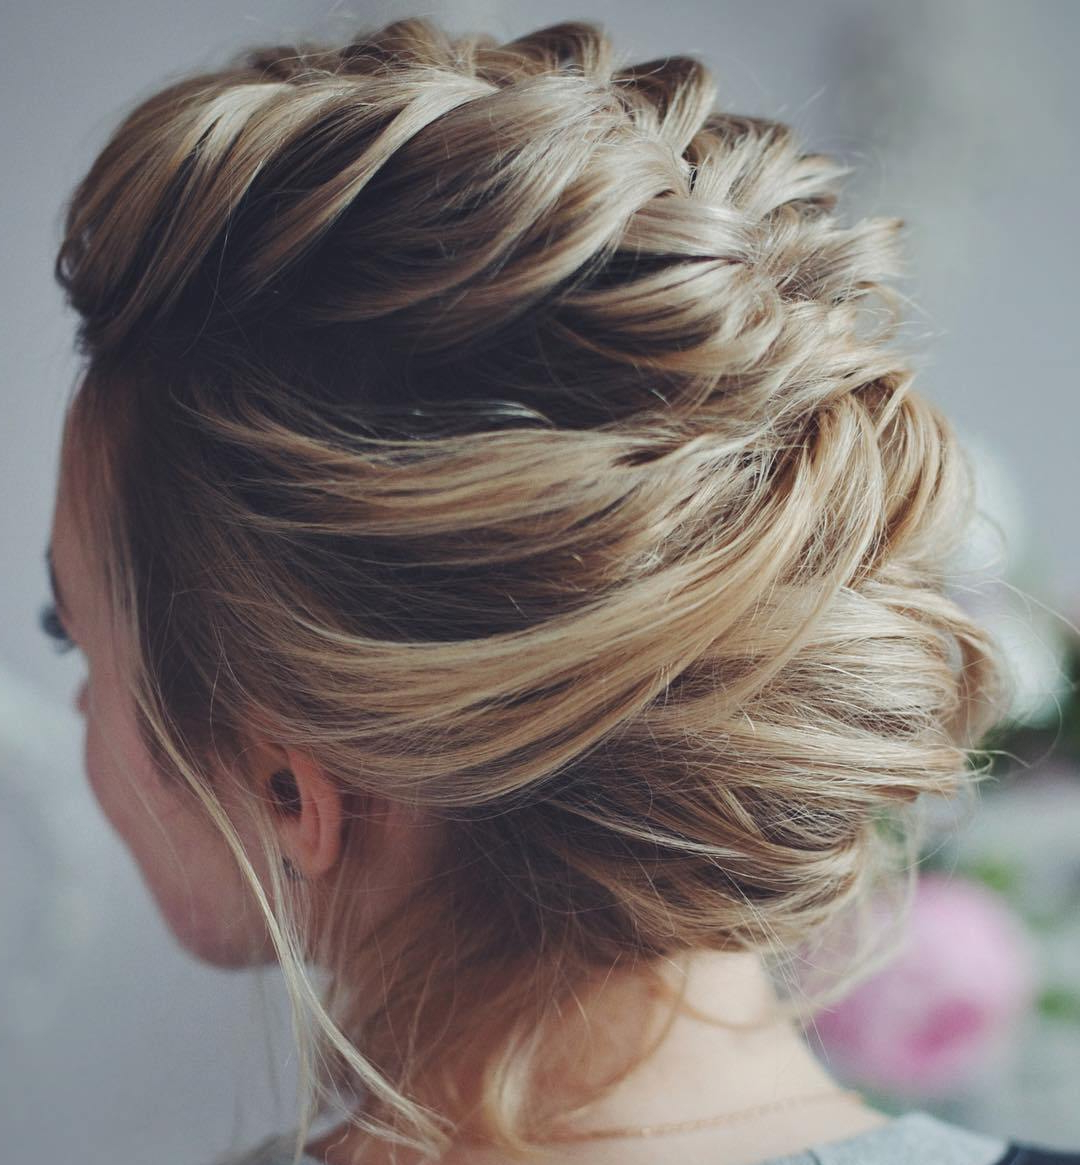 50 Hottest Prom Hairstyles For Short Hair Throughout Famous Classic Prom Updos With Thick Accent Braid (Gallery 6 of 20)